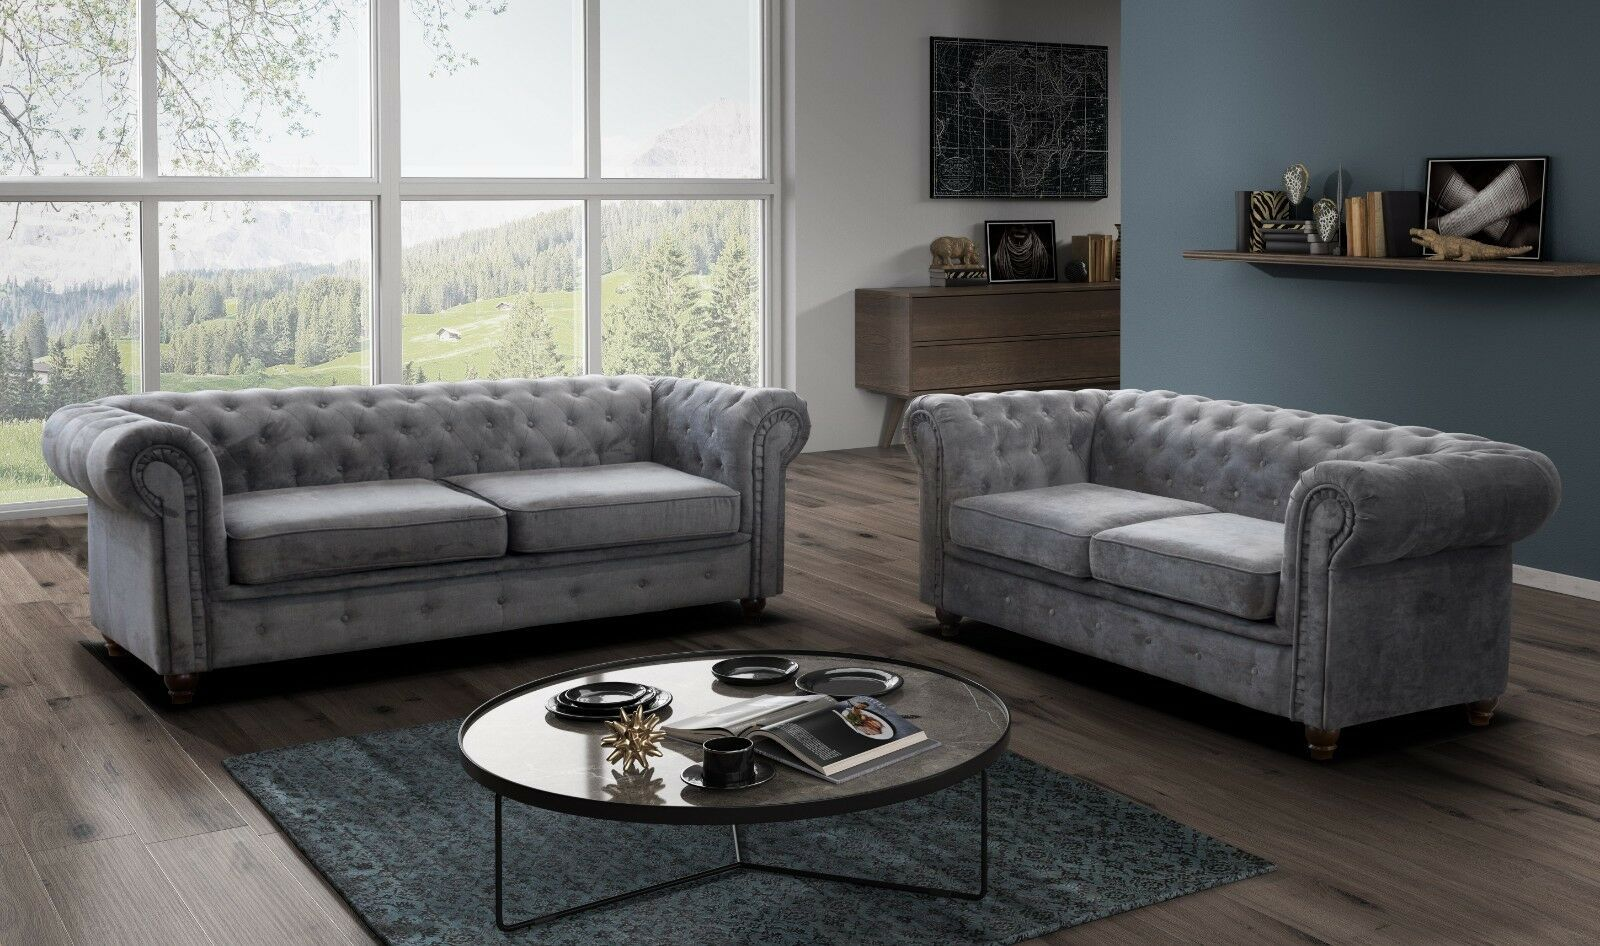 Chesterfield Sofa Infinity Fabric 3 2 Seater Armchair Grey Silver Ebay Green Sofa Living Room Sofa Leather Corner Sofa